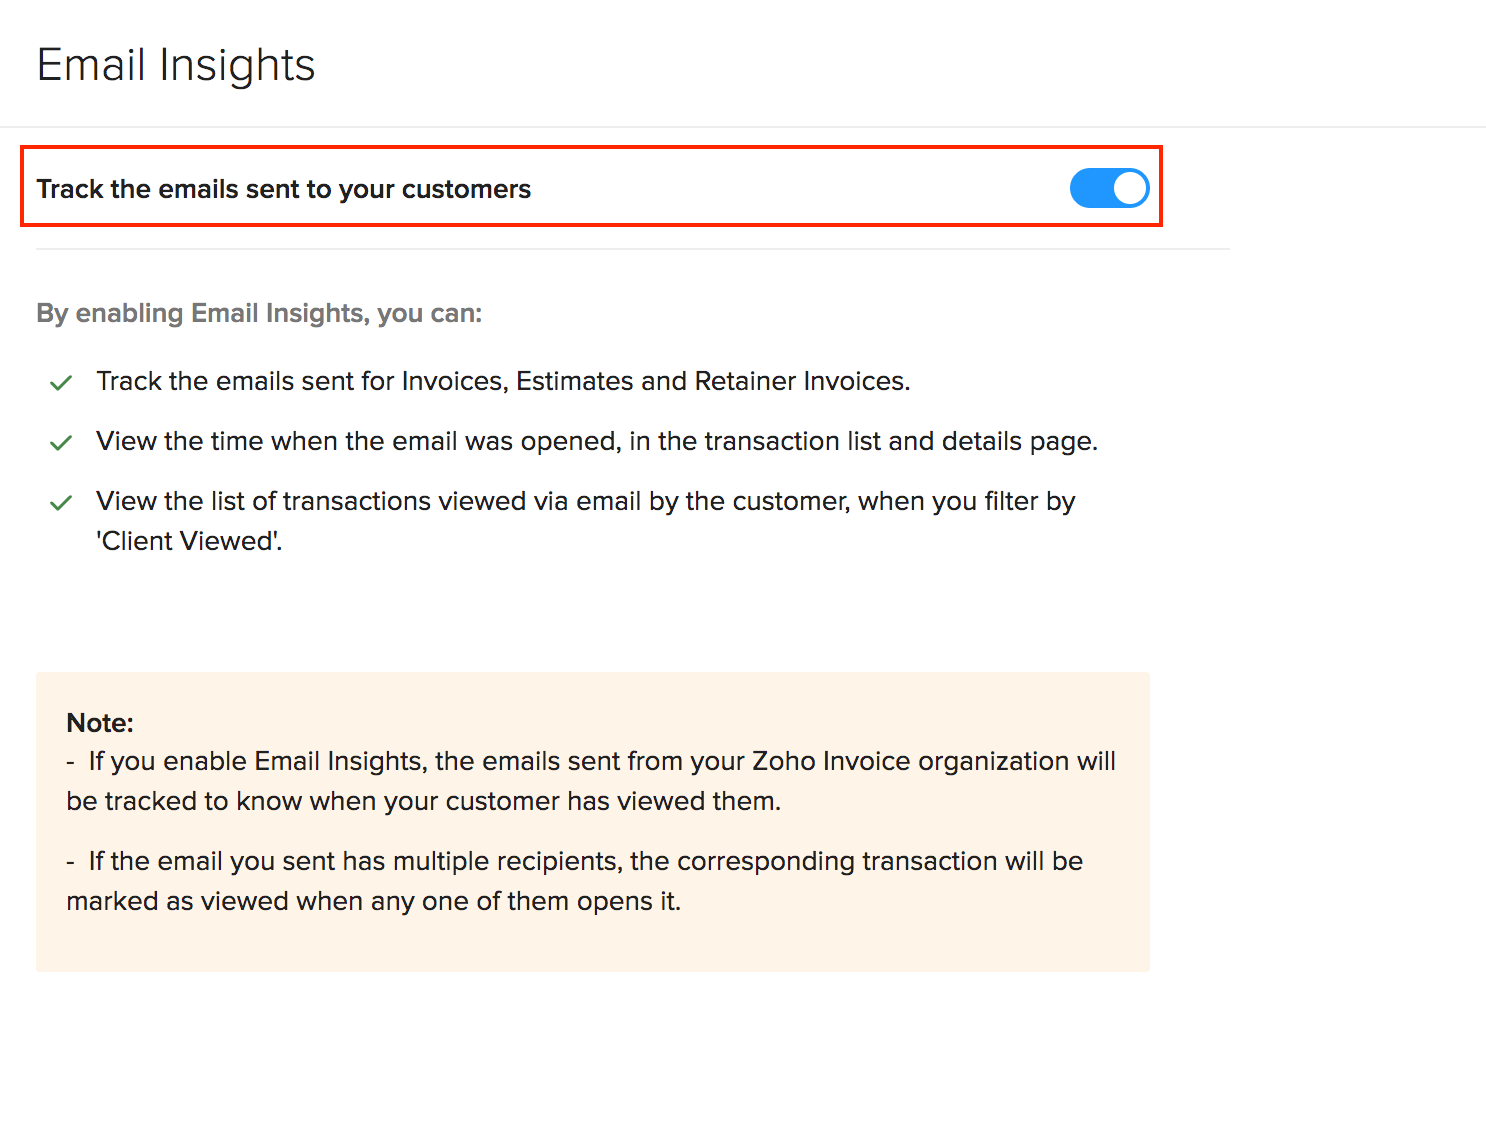 Enable email insights